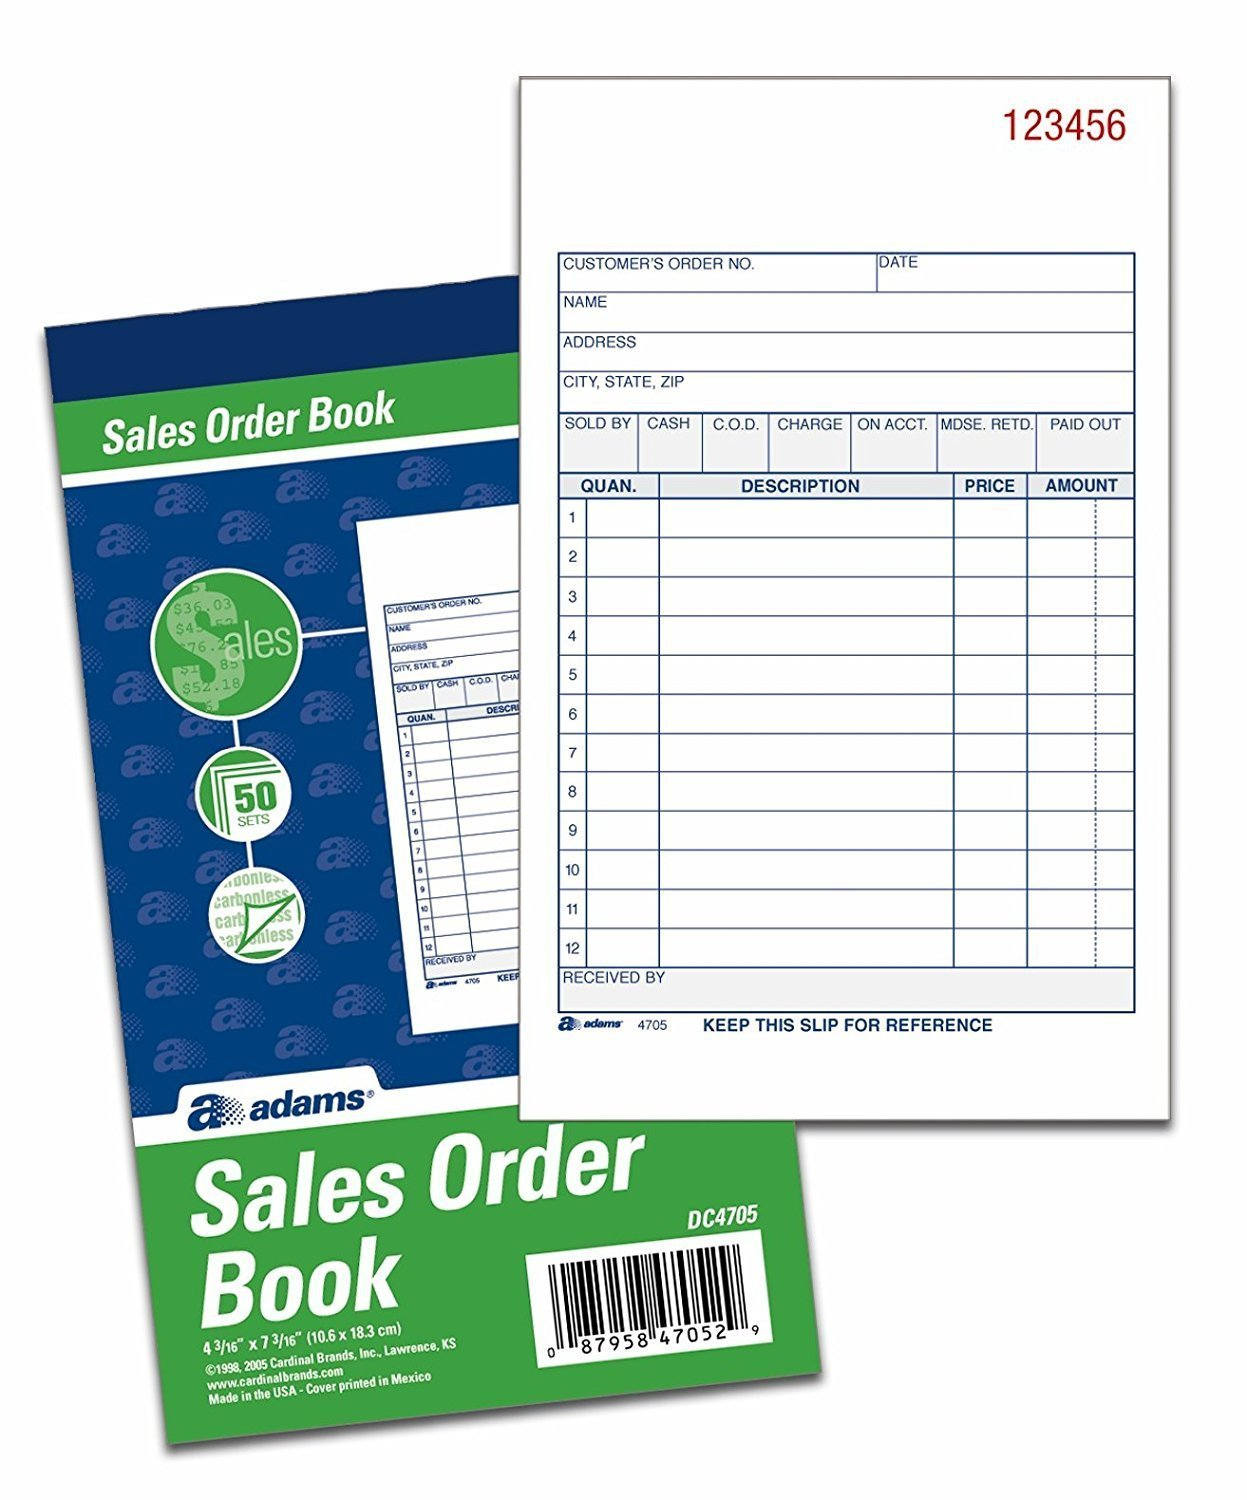 Adams Sales Order Books, 2-Part, Carbonless, White/Canary, 4-3/16 x 7-3/16 Inches, 50 Sets per Book, 6 Books by Adams